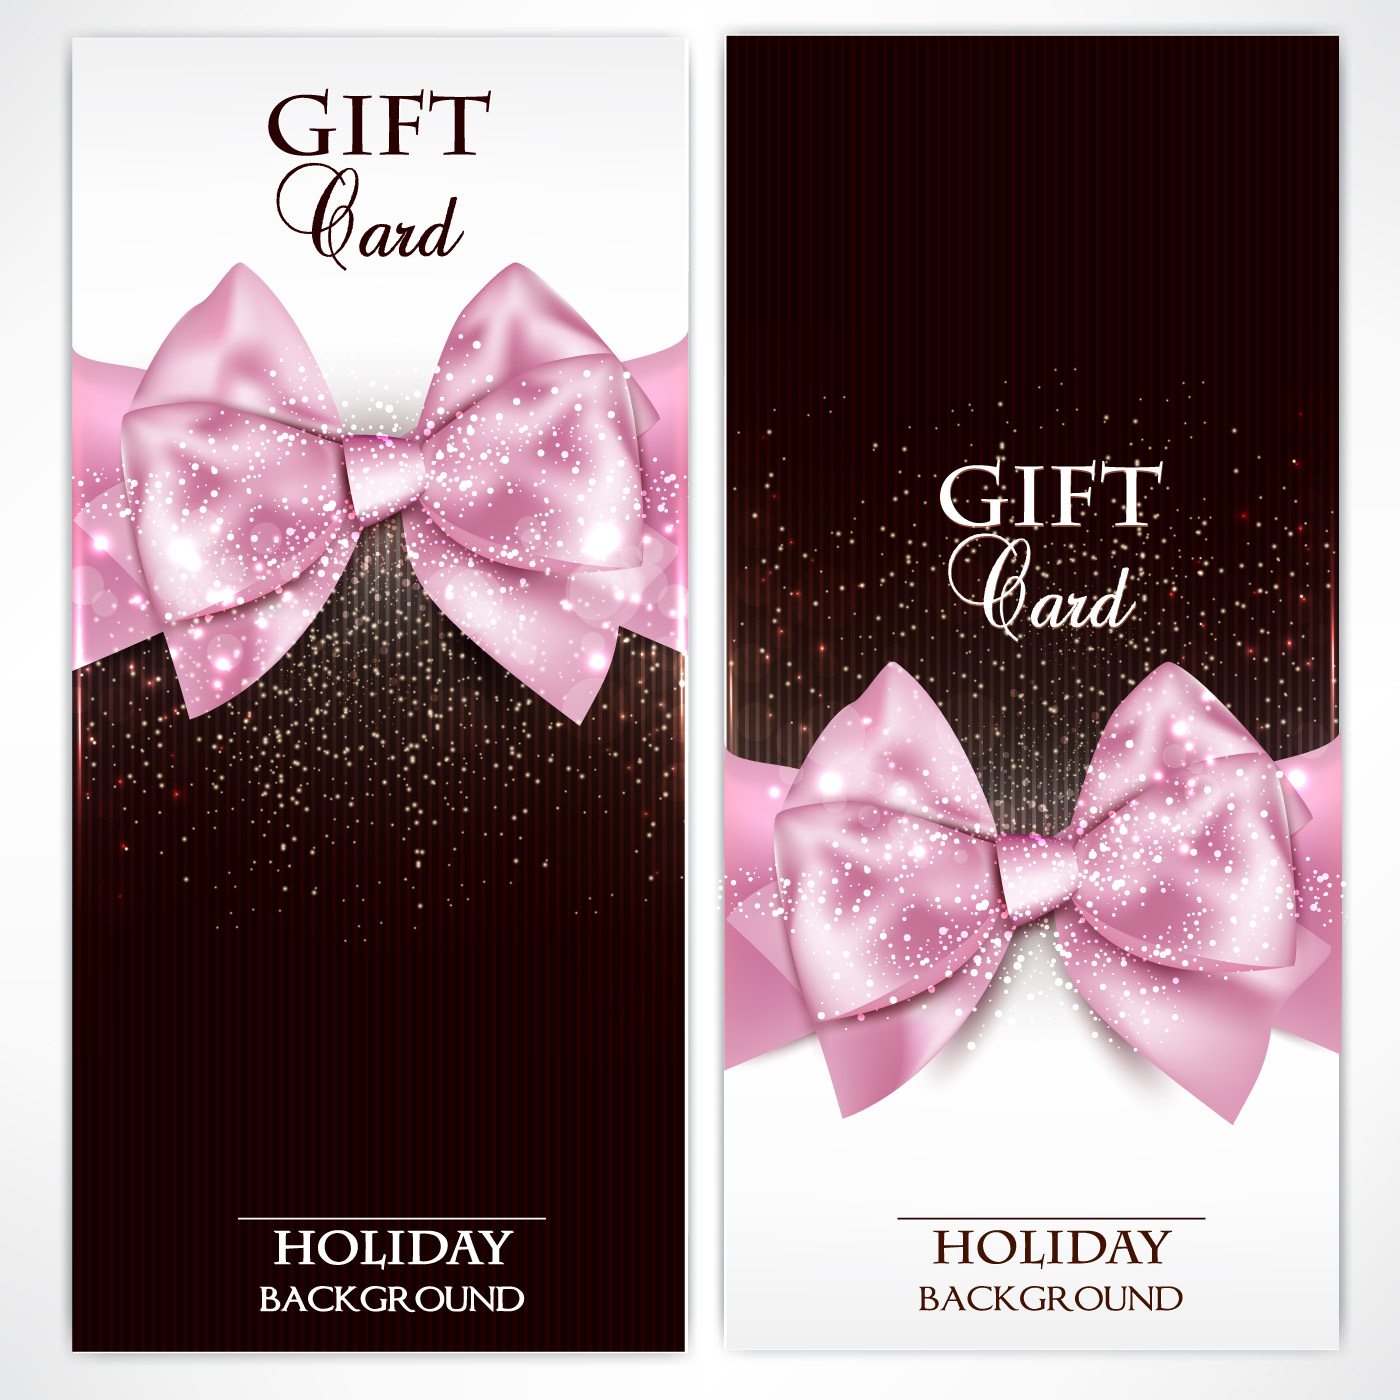 shiny holiday gift cards vector vector card shiny holiday gift cards vector 01